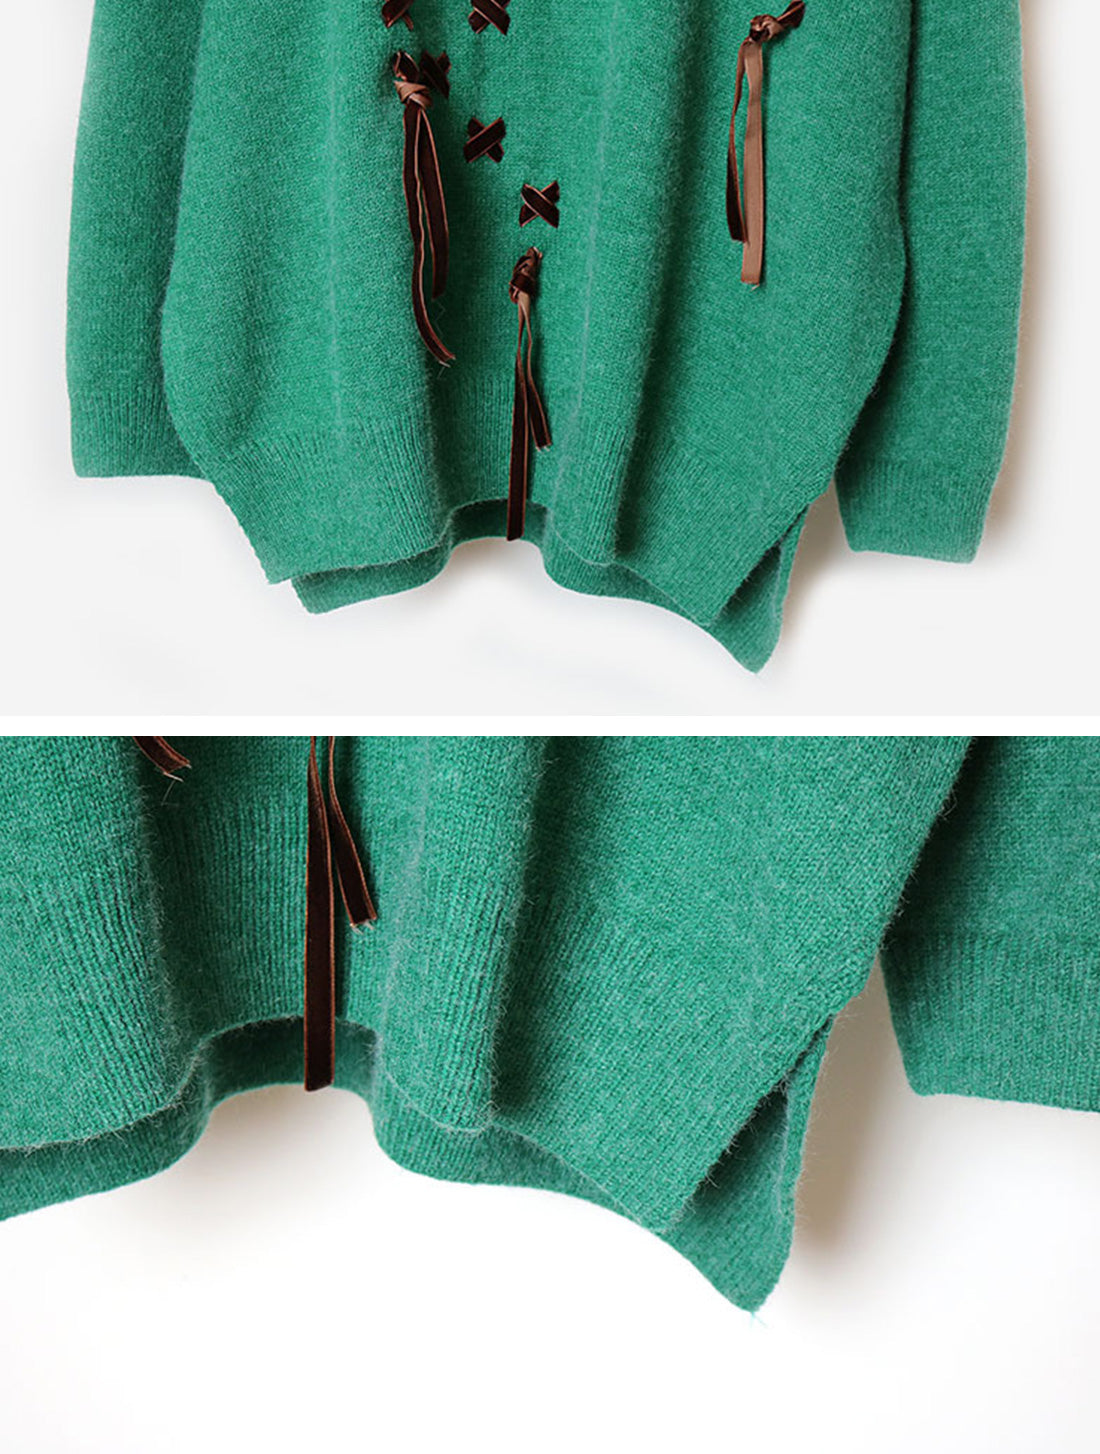 Daily Luxe Green Sweater Top Details 3